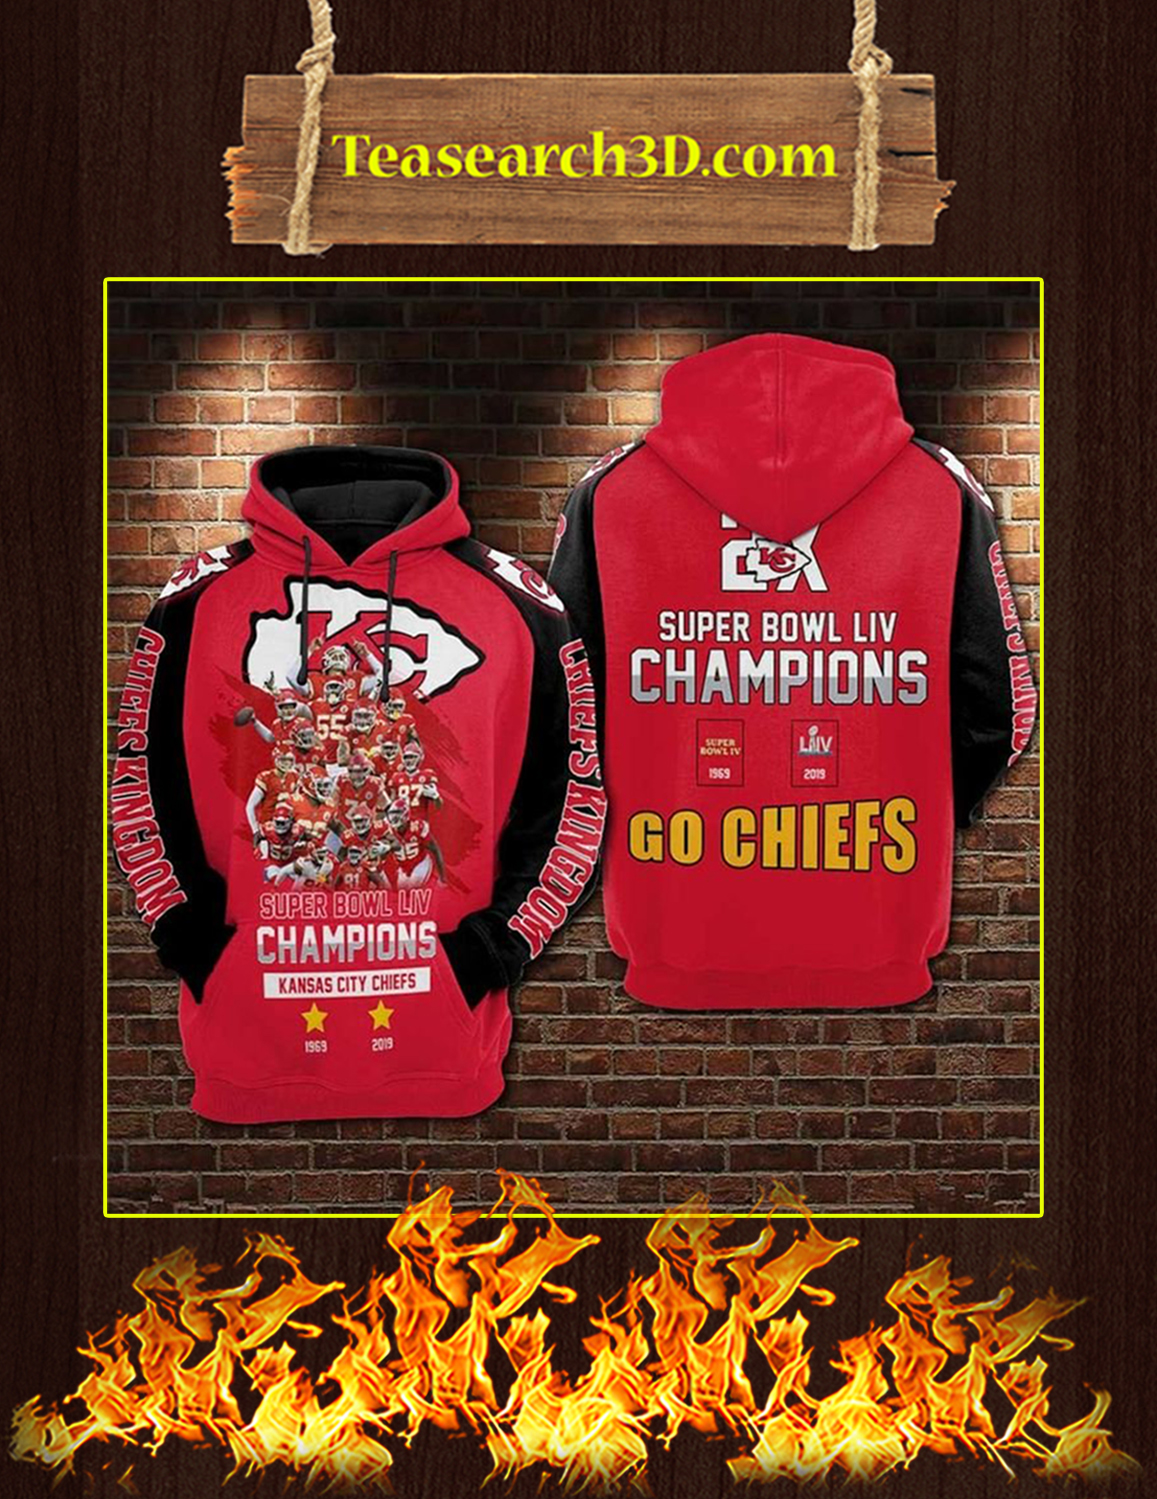 Super Bowl LIV Champions Go Chiefs 3D Full Printing Hoodie Pic 3